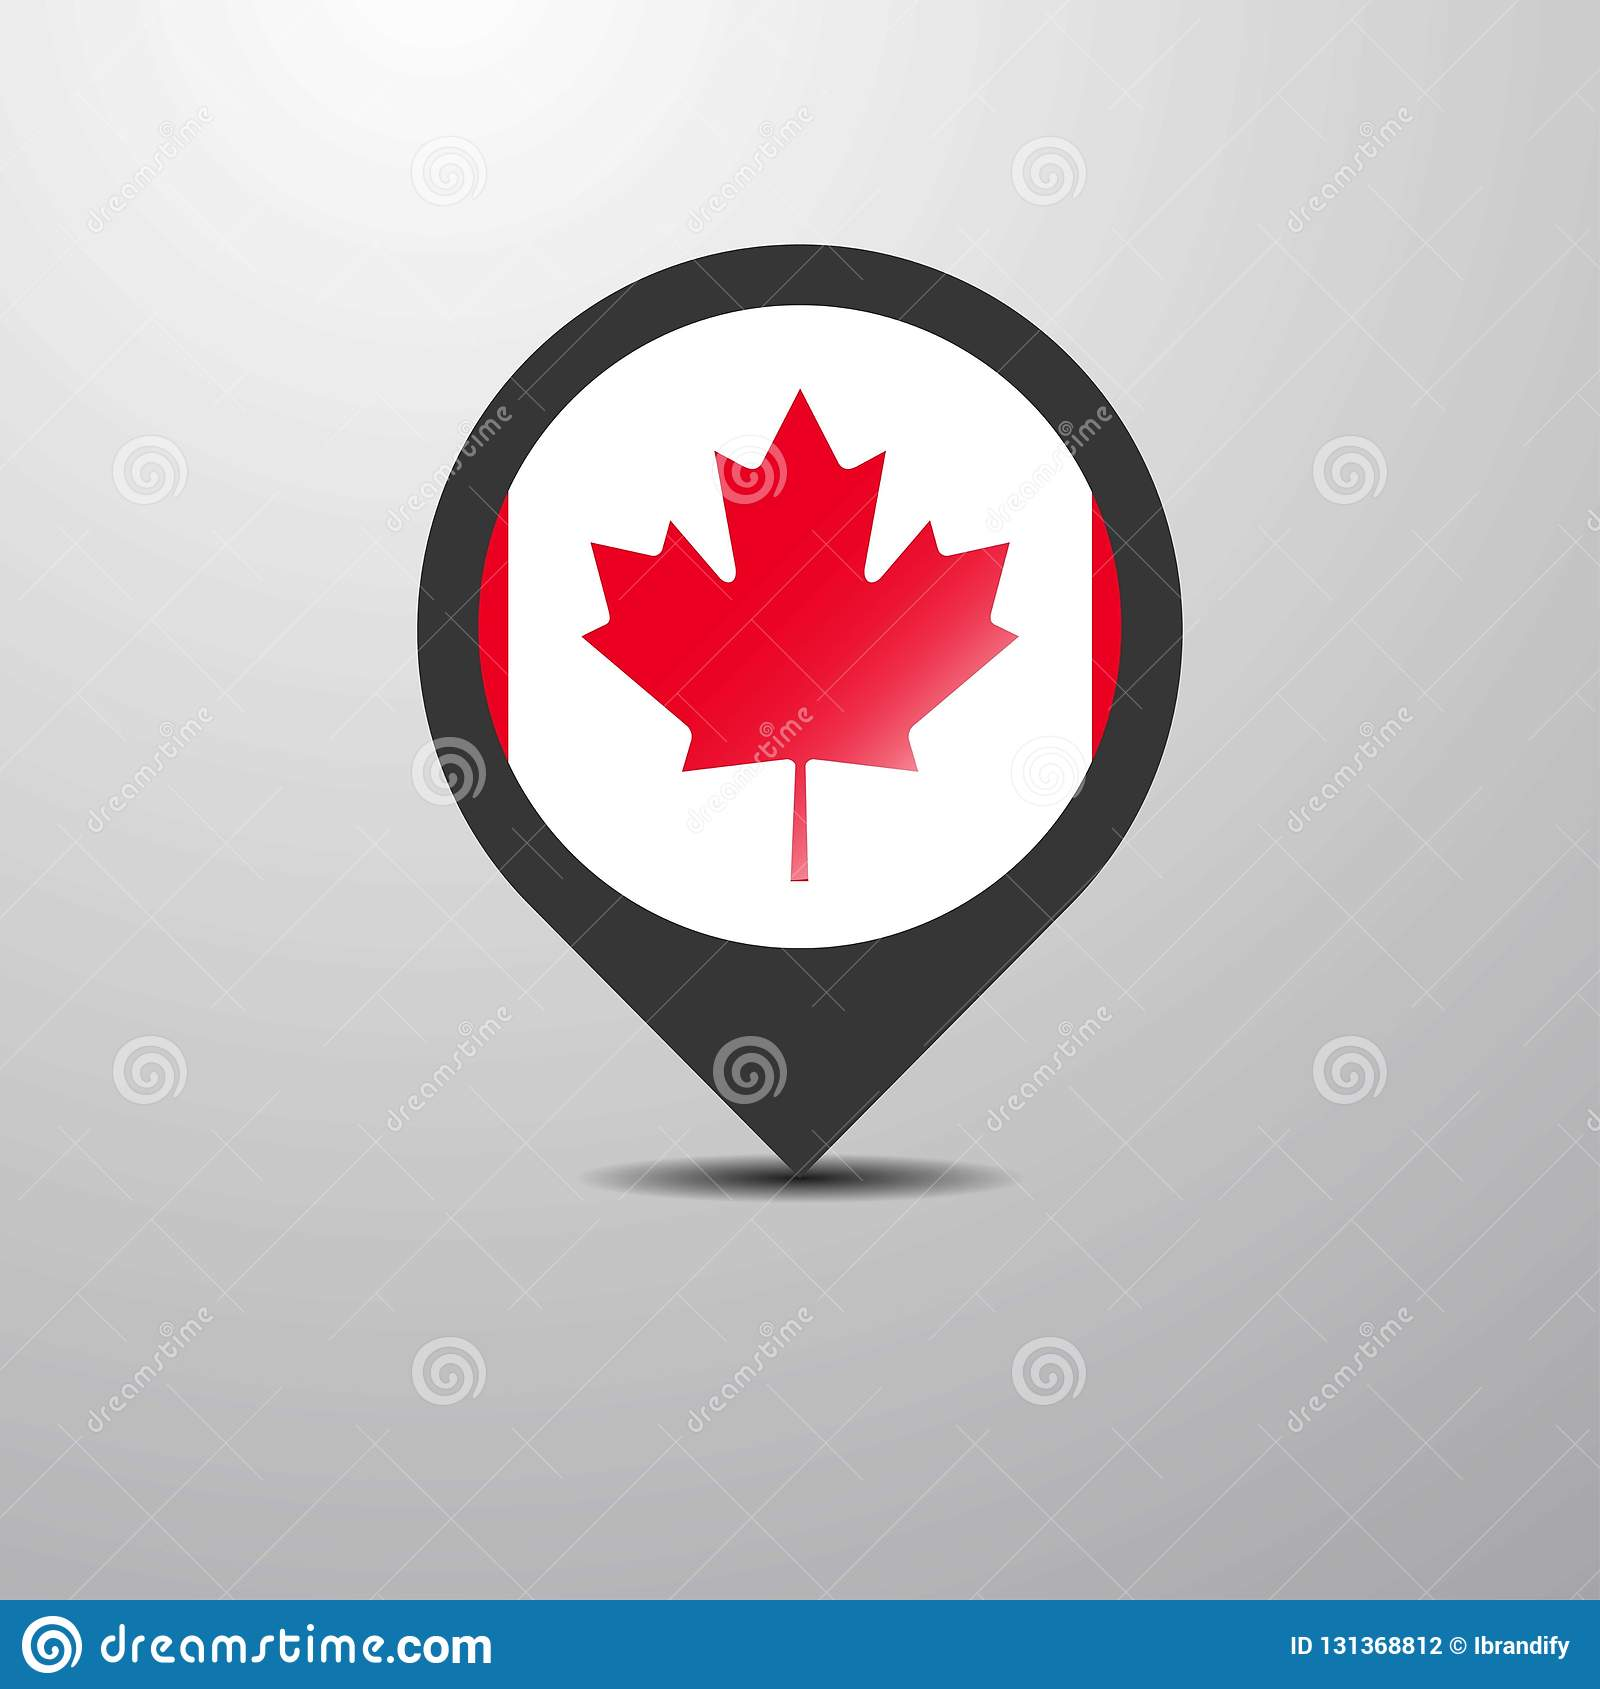 Map Of Canada Eps.Canada Map Pin Stock Vector Illustration Of States 131368812